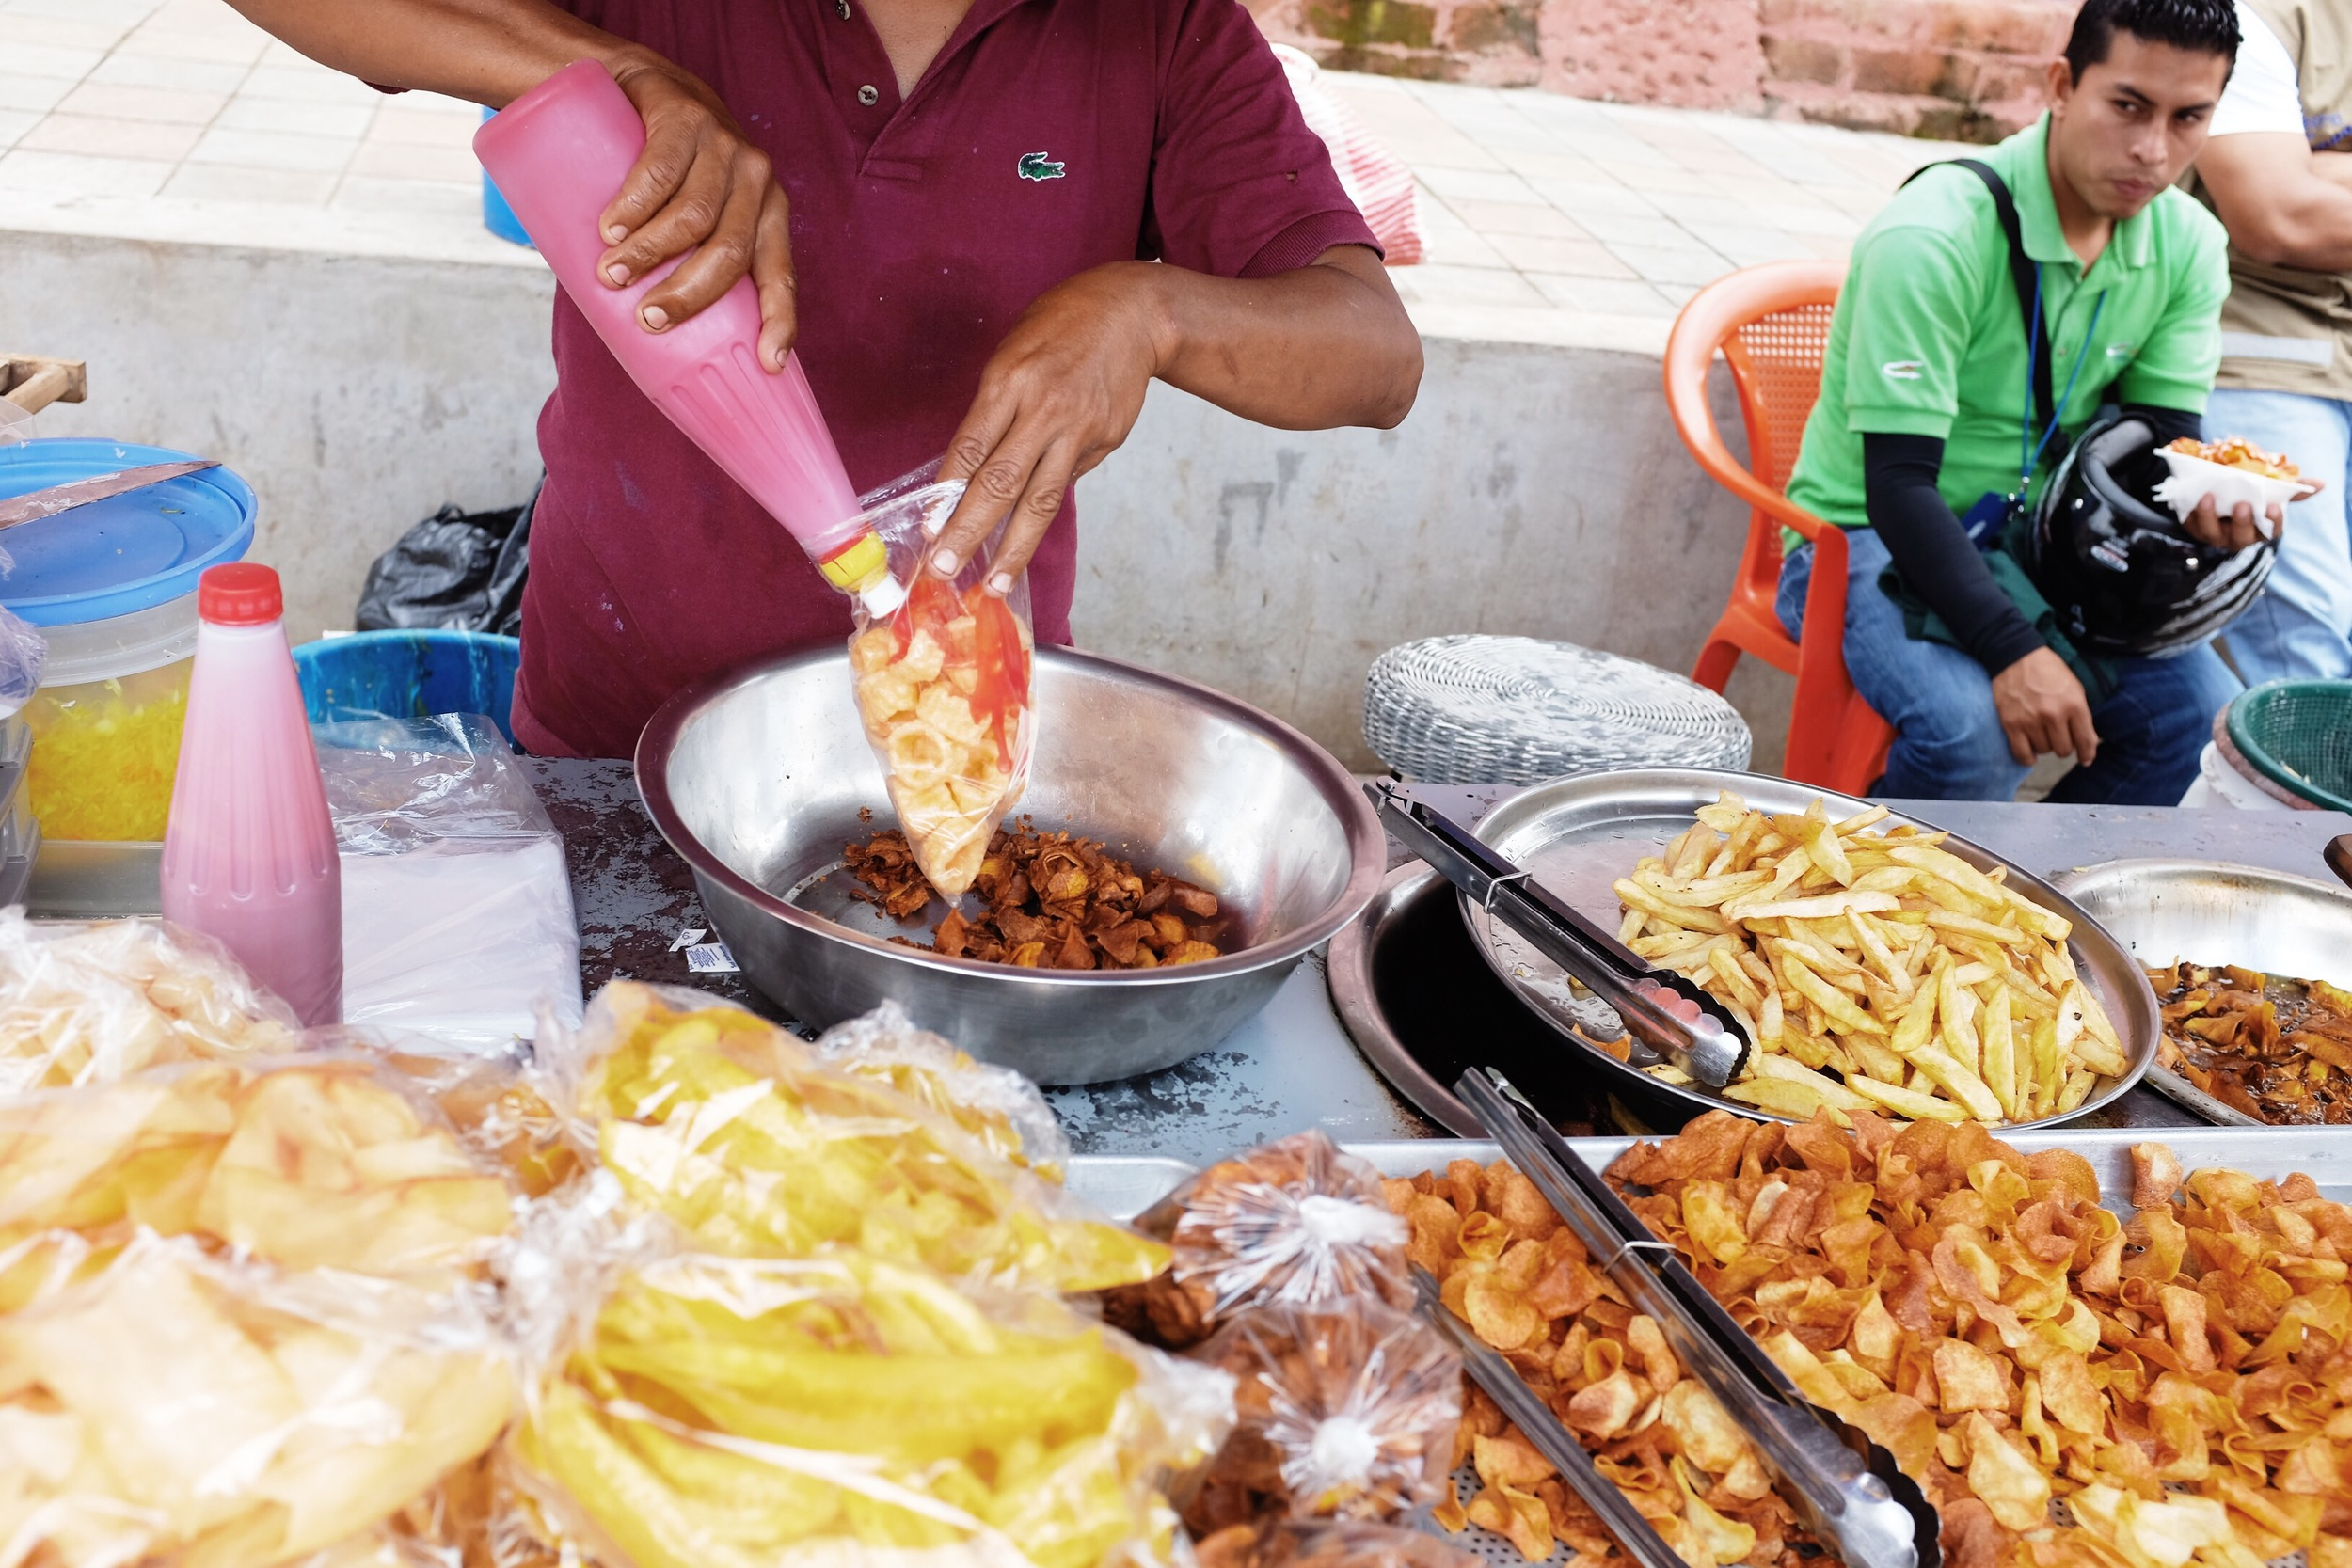 A display of popular snacks such as fried pork skin, yucca chips, and plantain chips.